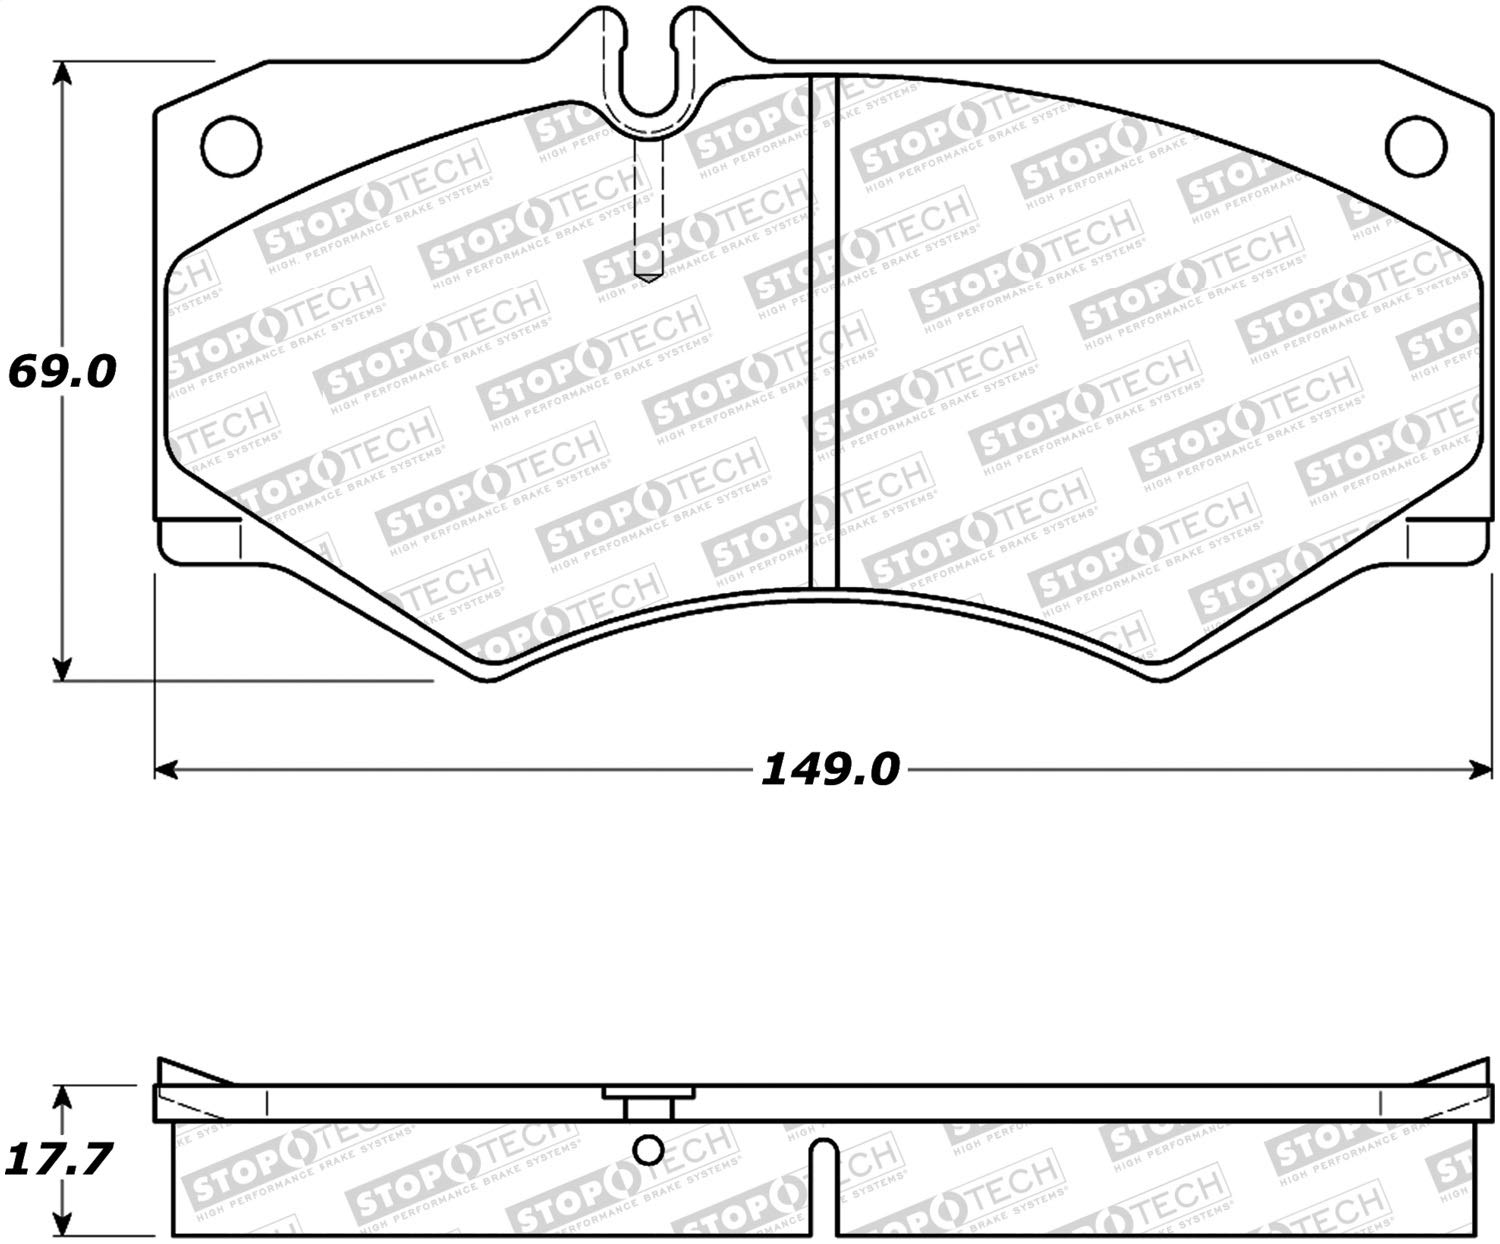 StopTech 308.09270 Street Brake Pads; Front with Shims